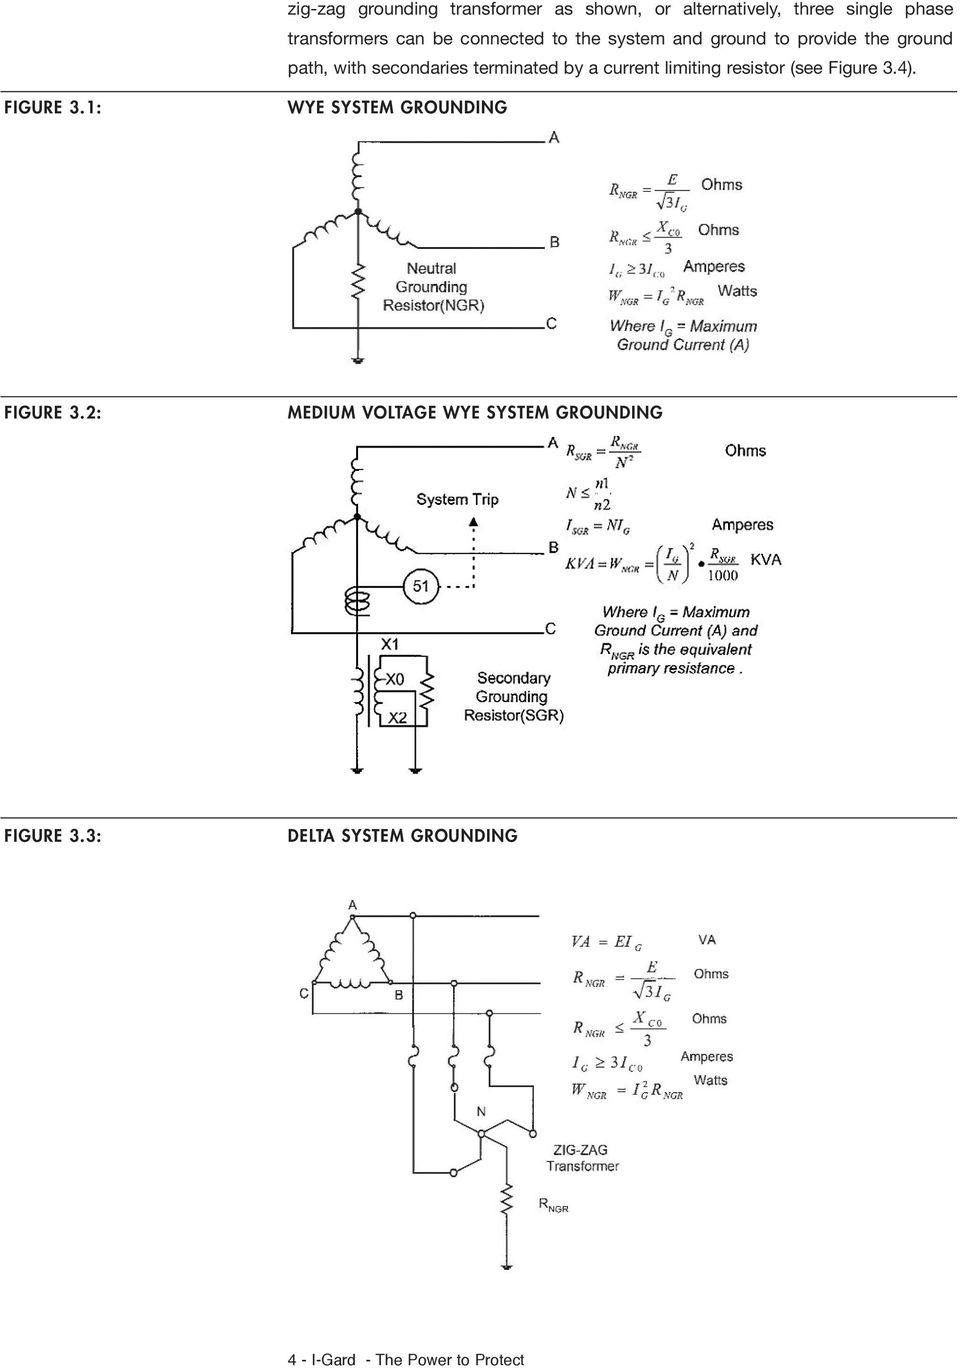 Ground Fault Protection on Ungrounded and High Resistance Grounded